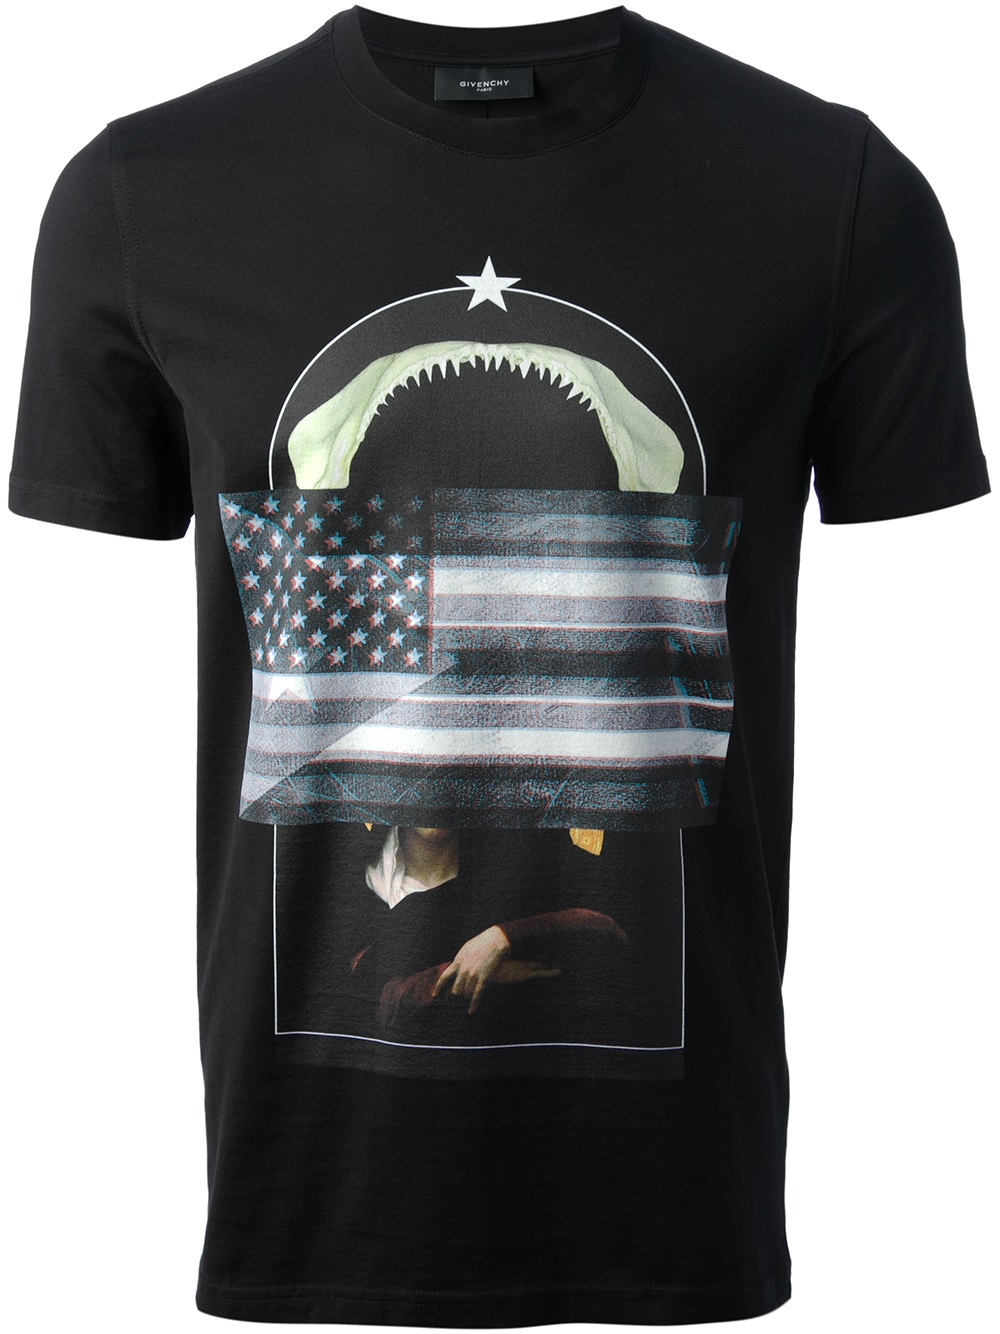 Givenchy-flag-collage-print-t-shirt